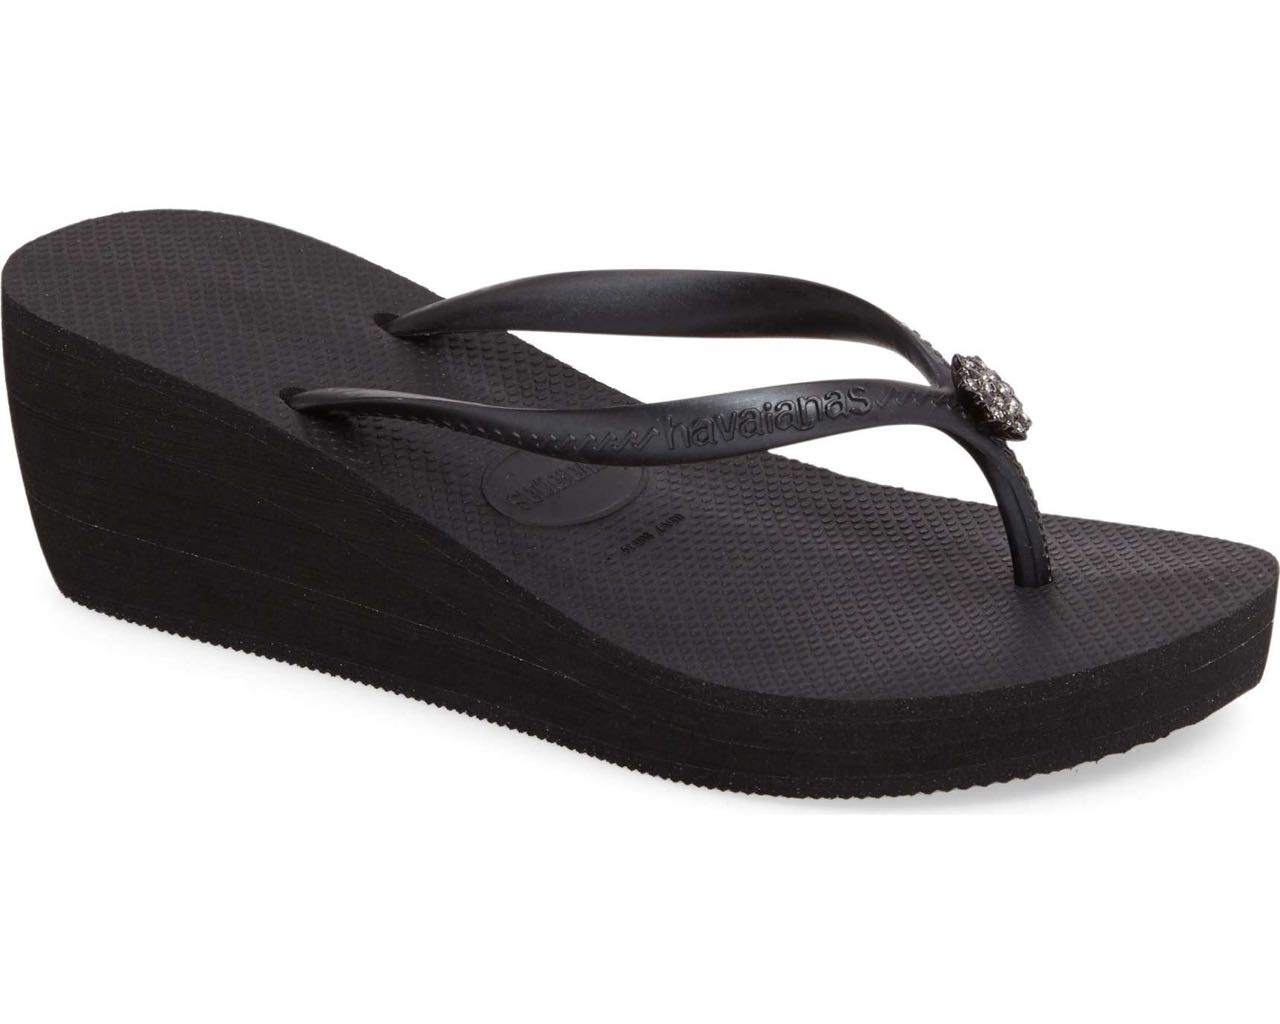 81cfe1550878 Havaianas Wedge Flip Flops High Fashion POEM Black